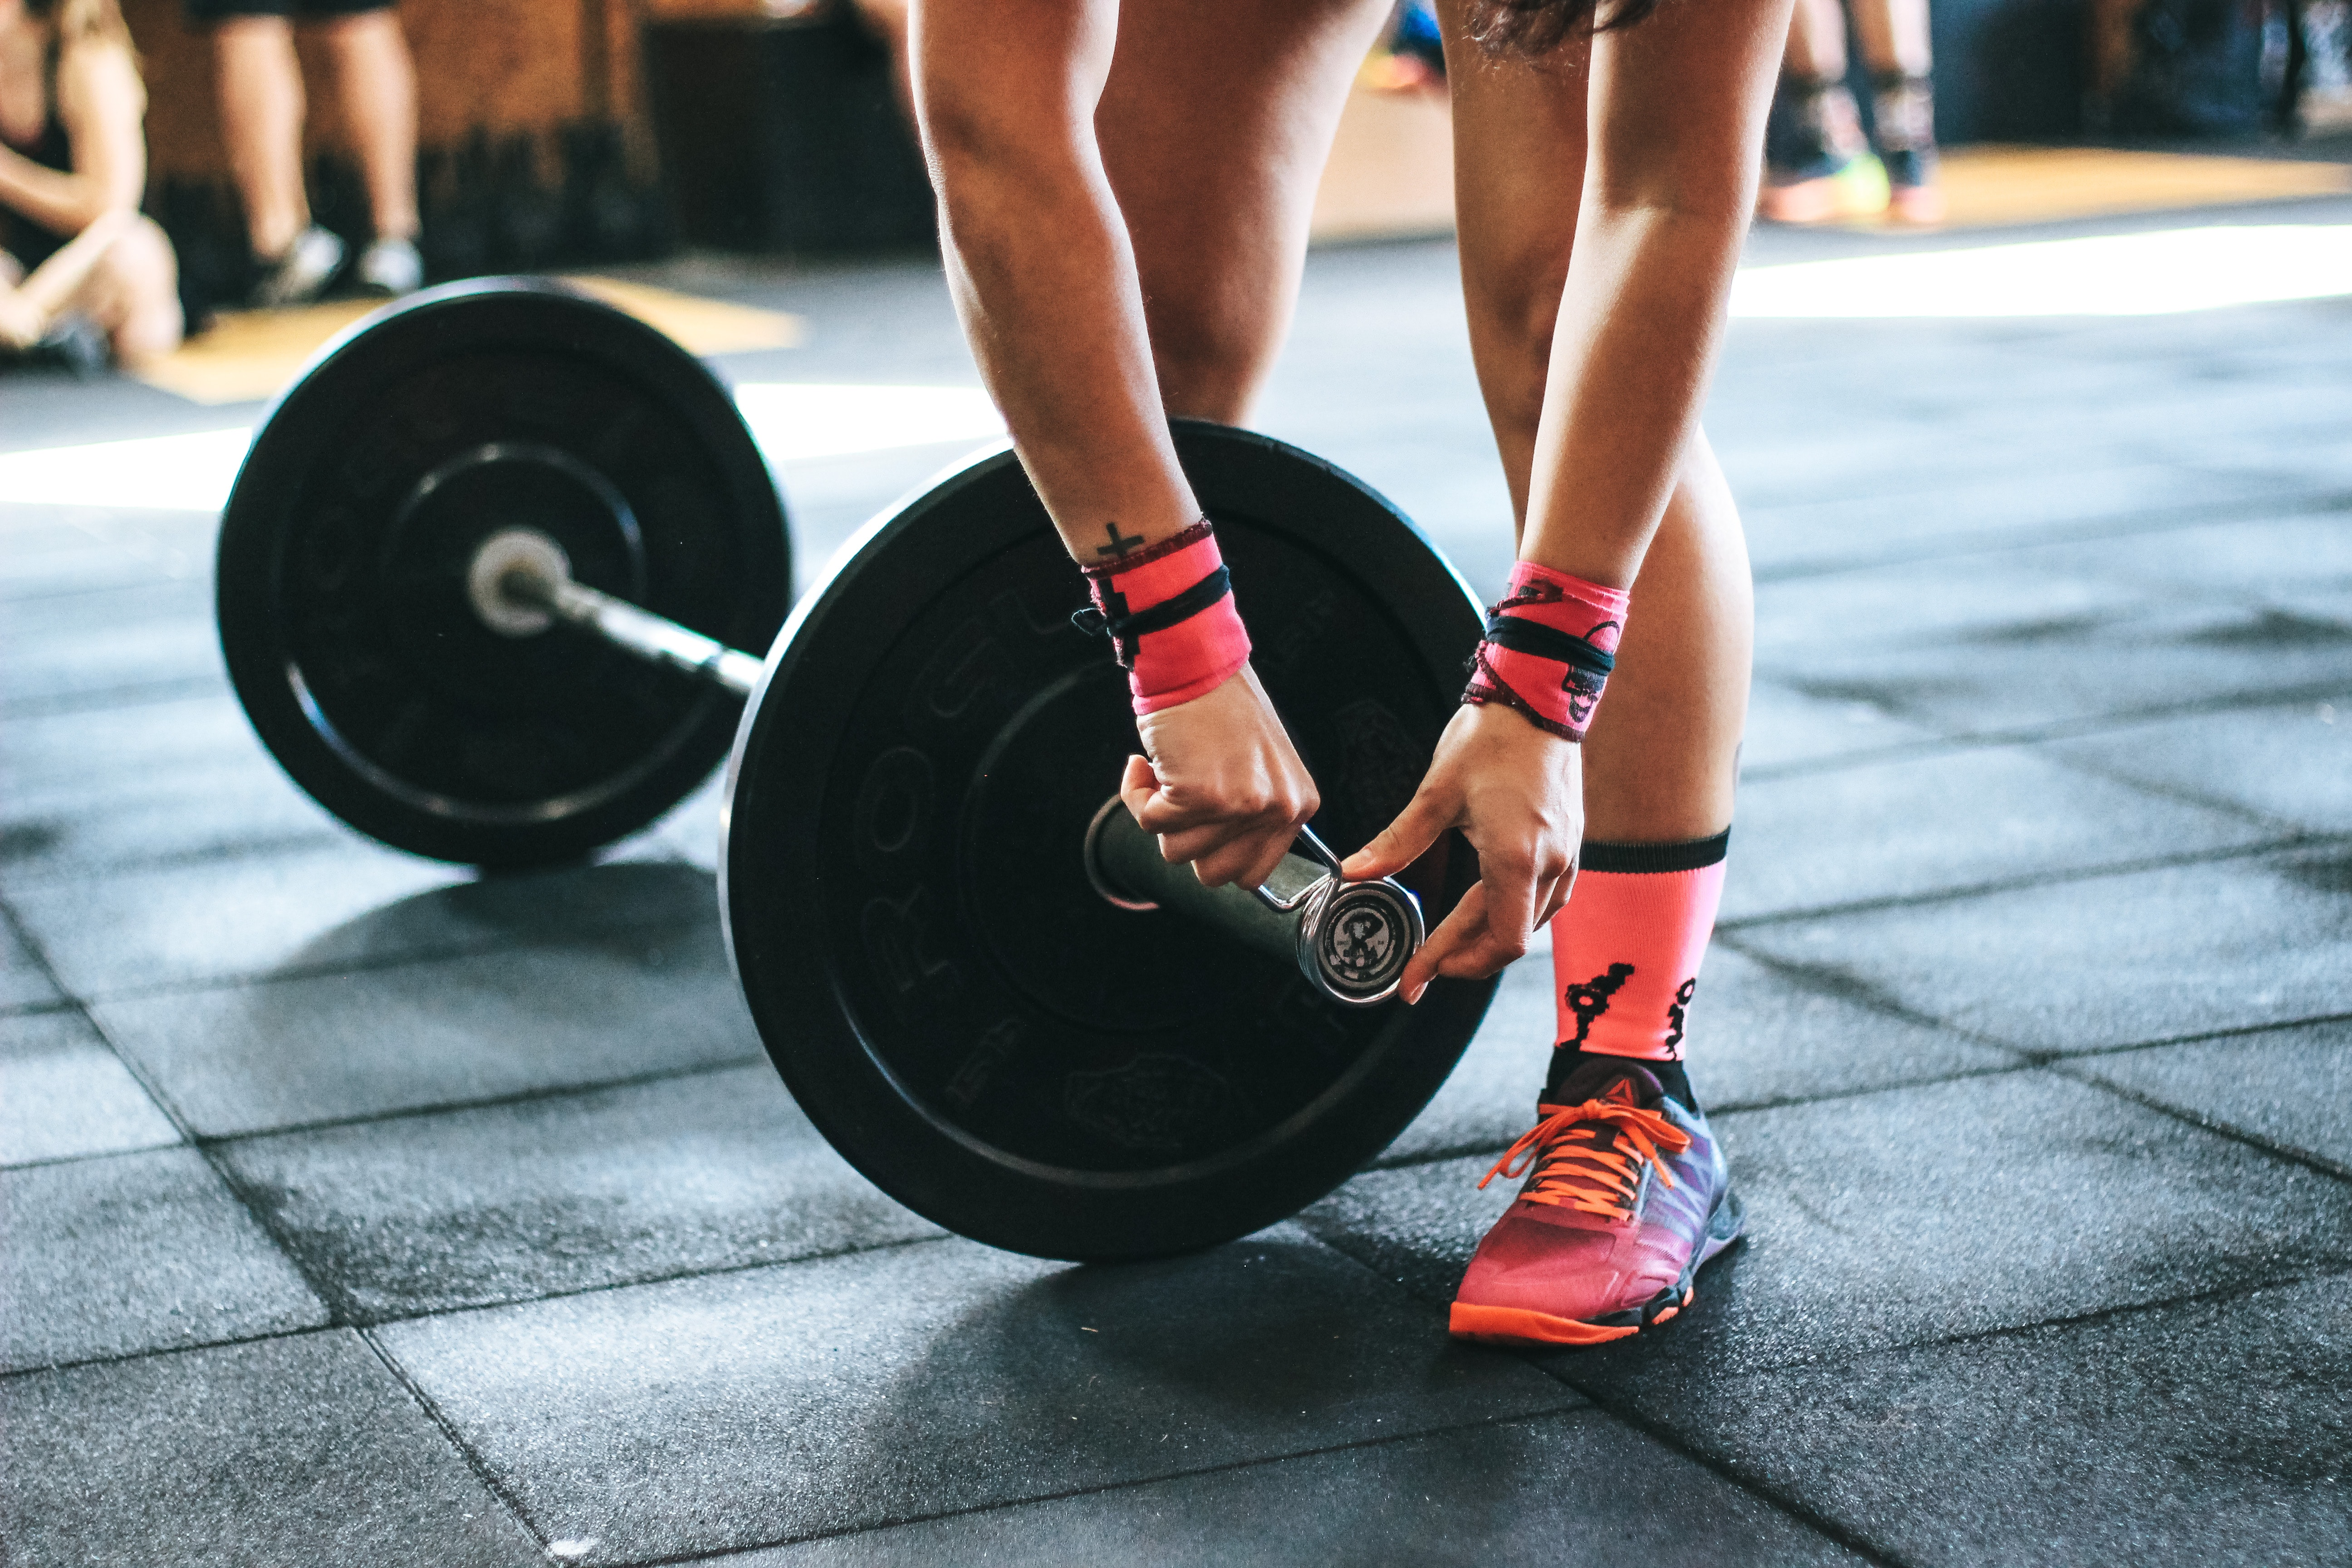 Person Holding Black Barbell, Active, Muscles, Weights, Weightlifting, HQ Photo